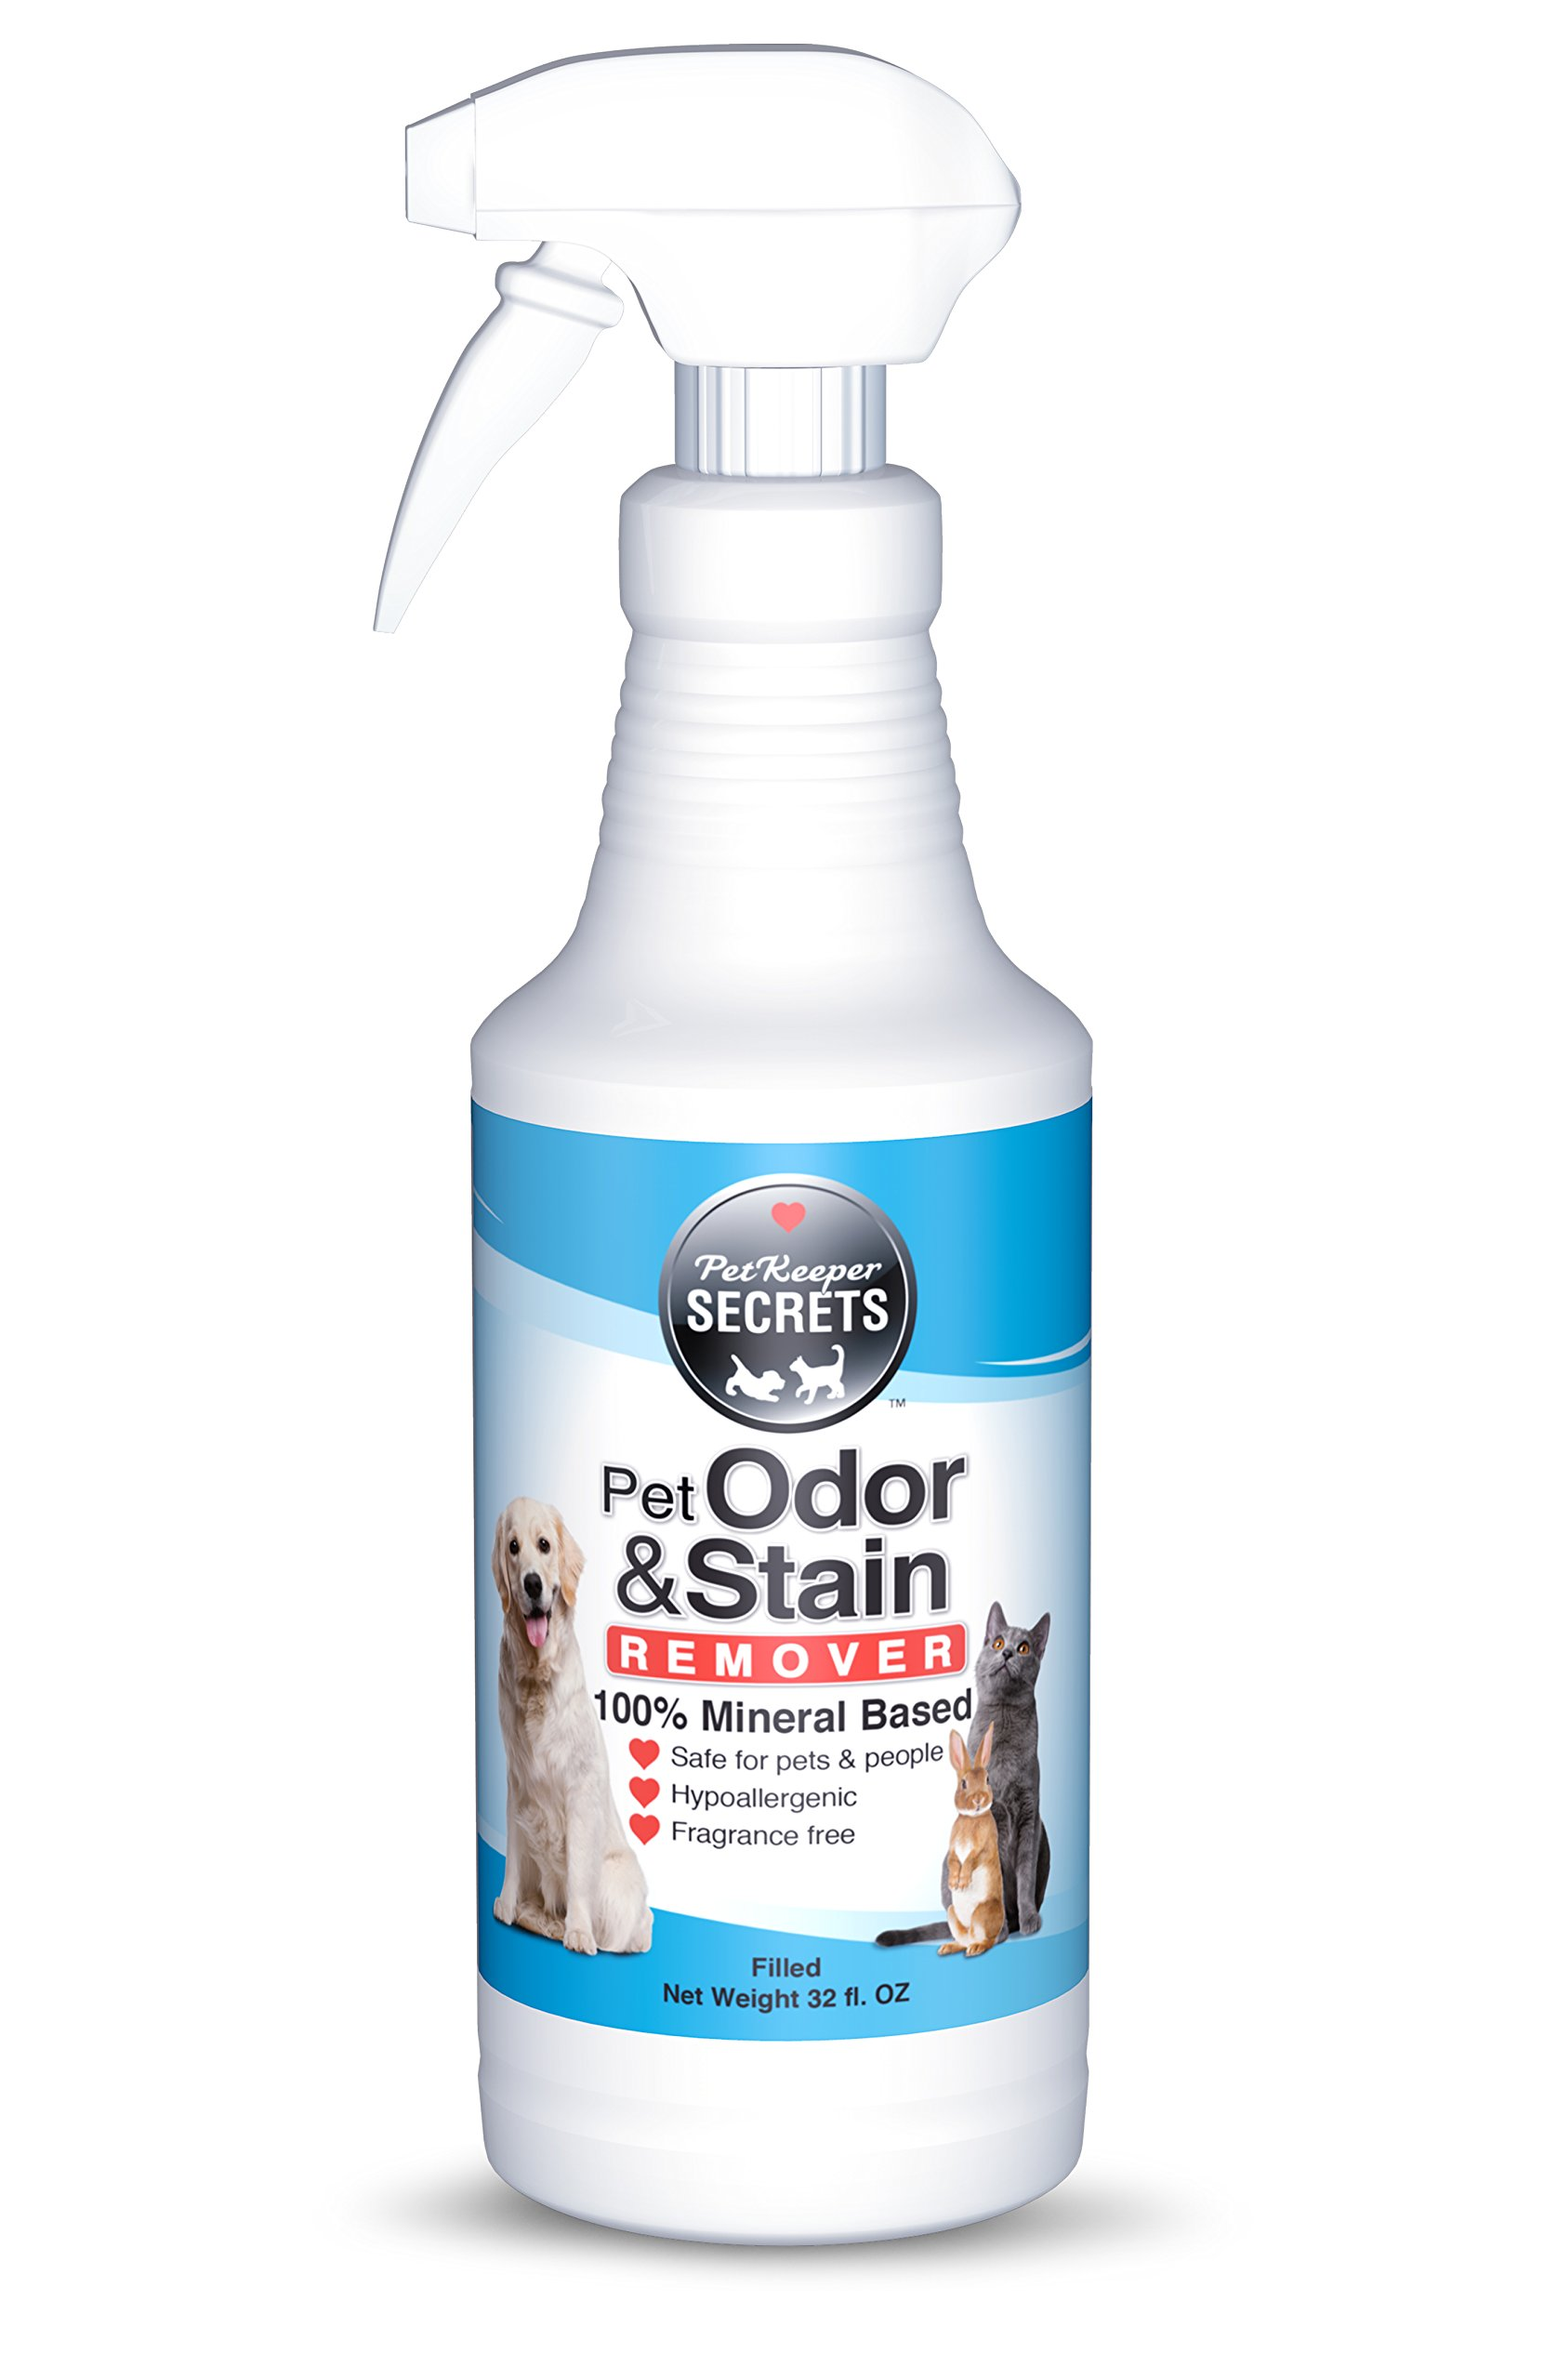 Pet odor and stain remover 32oz bottle